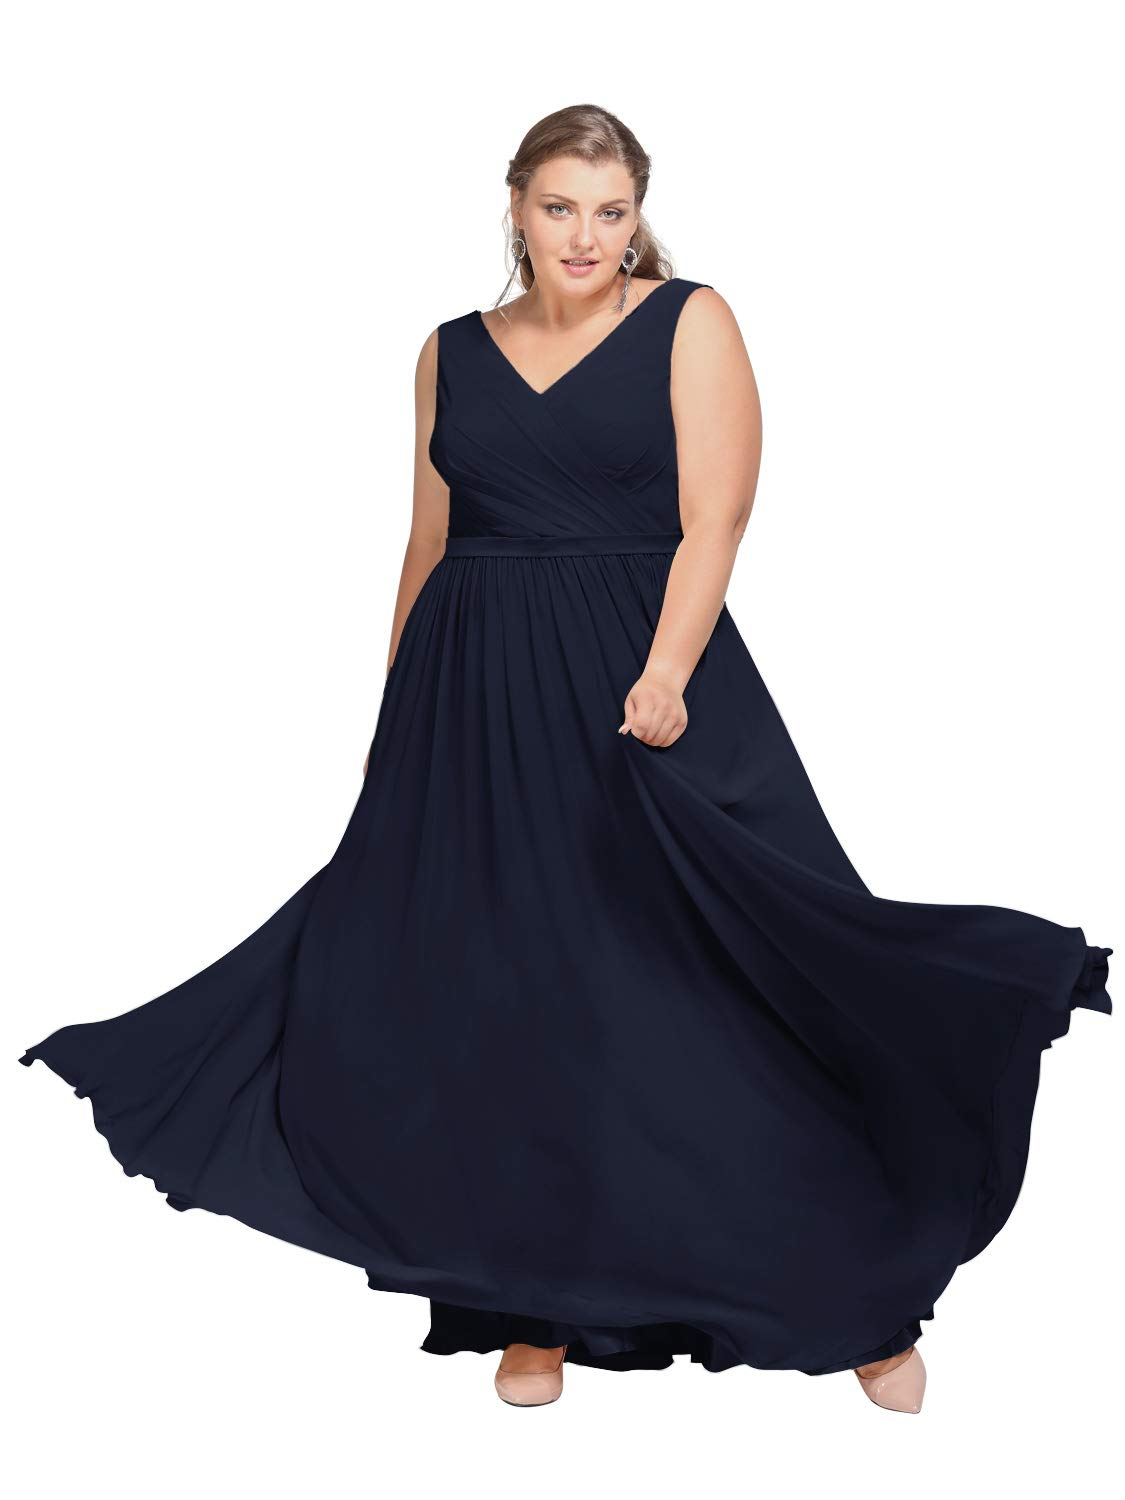 AW V-Neck Bridesmaid Dresses Long Formal Dresses for Women Maxi Evening Gowns, Dark Navy, US12